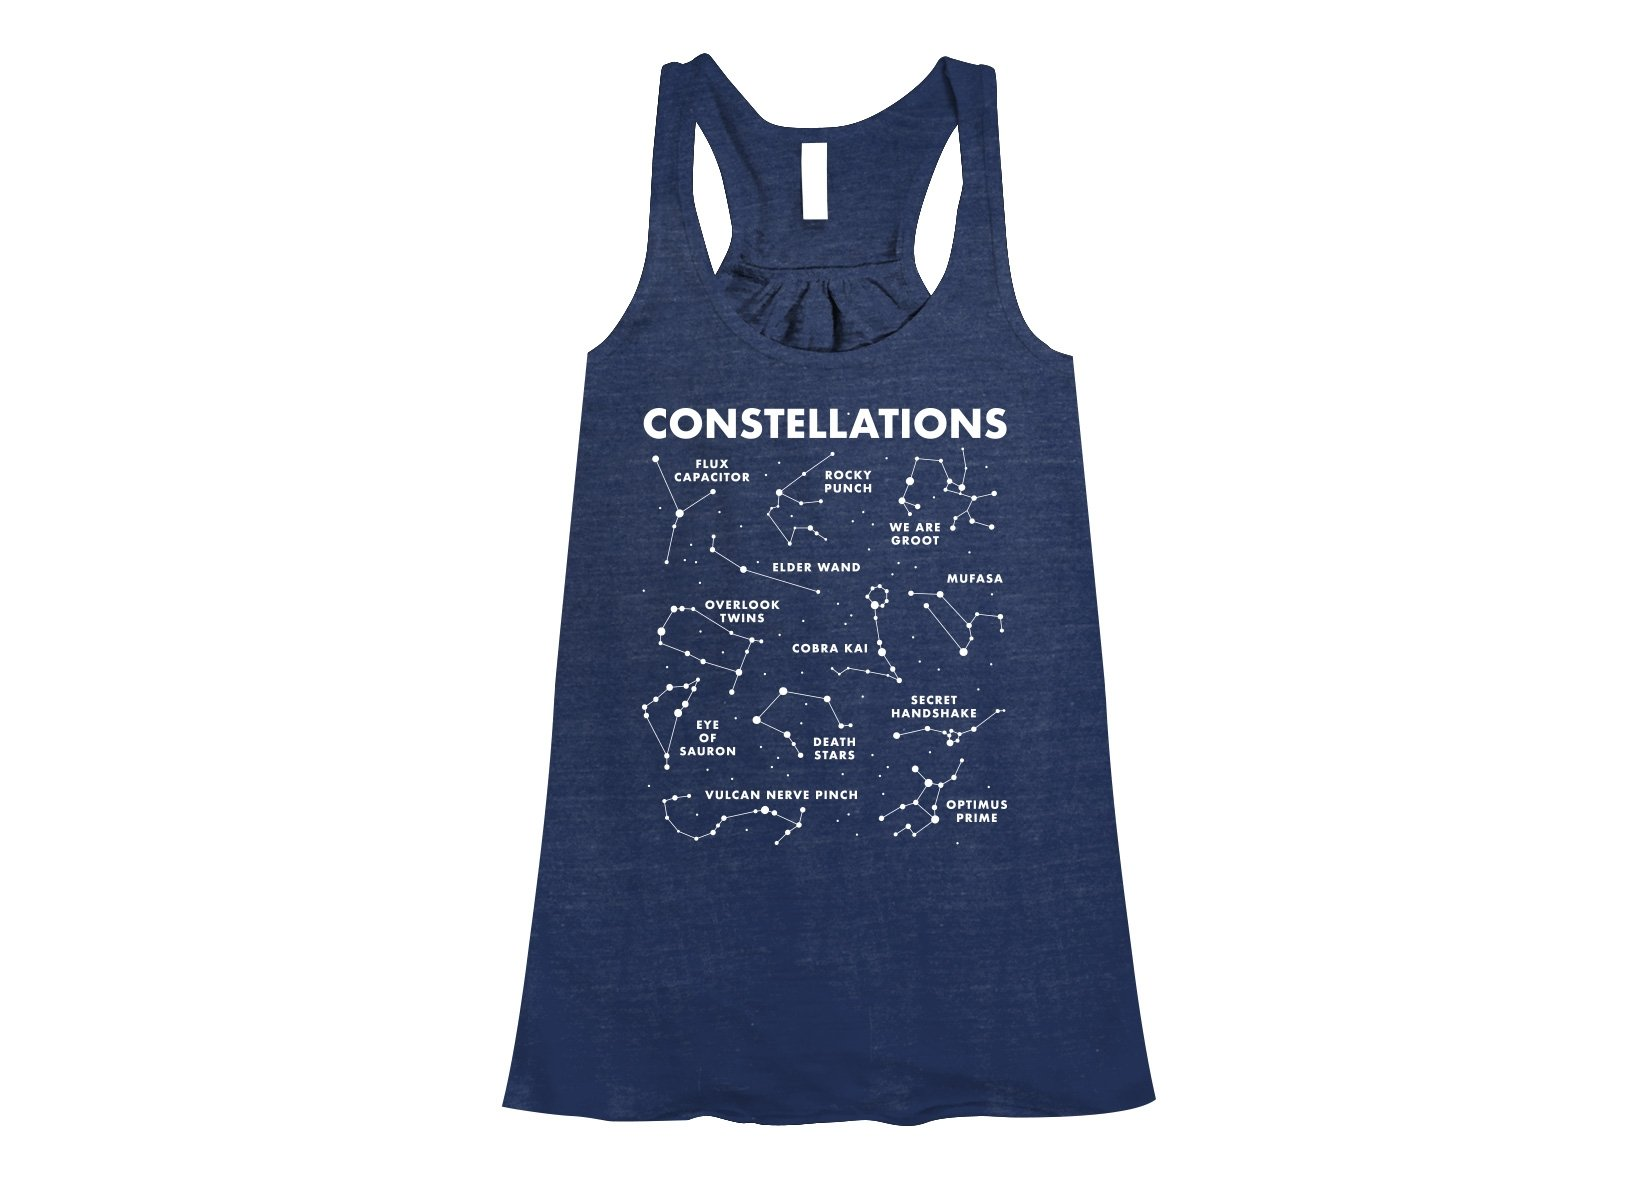 Constellations on Womens Tanks T-Shirt